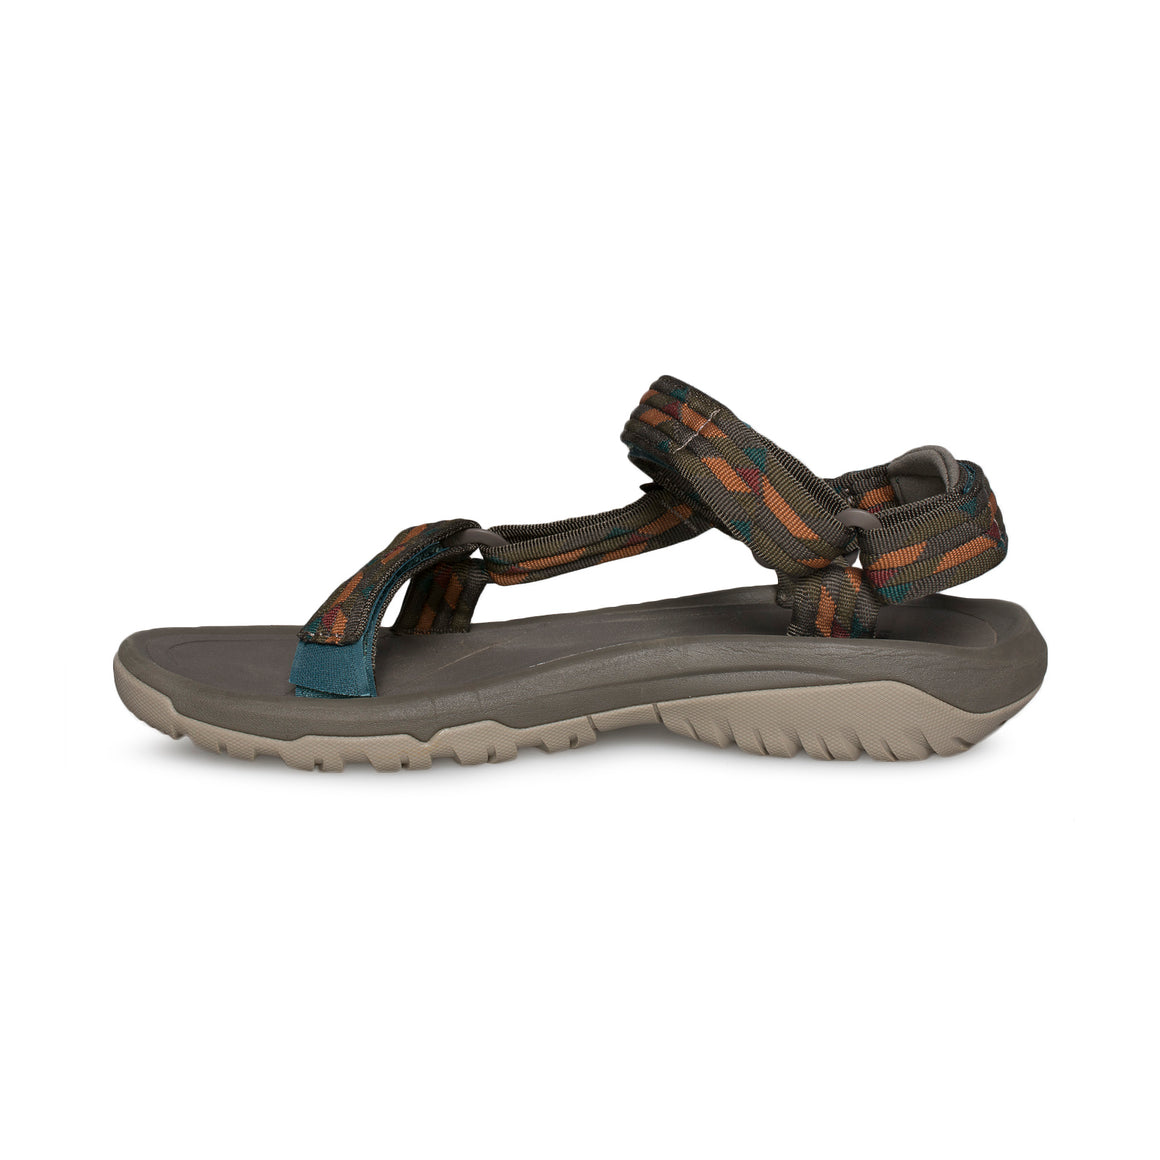 Teva Hurricane XLT 2 Kerne Black Olive Sandals - Men's